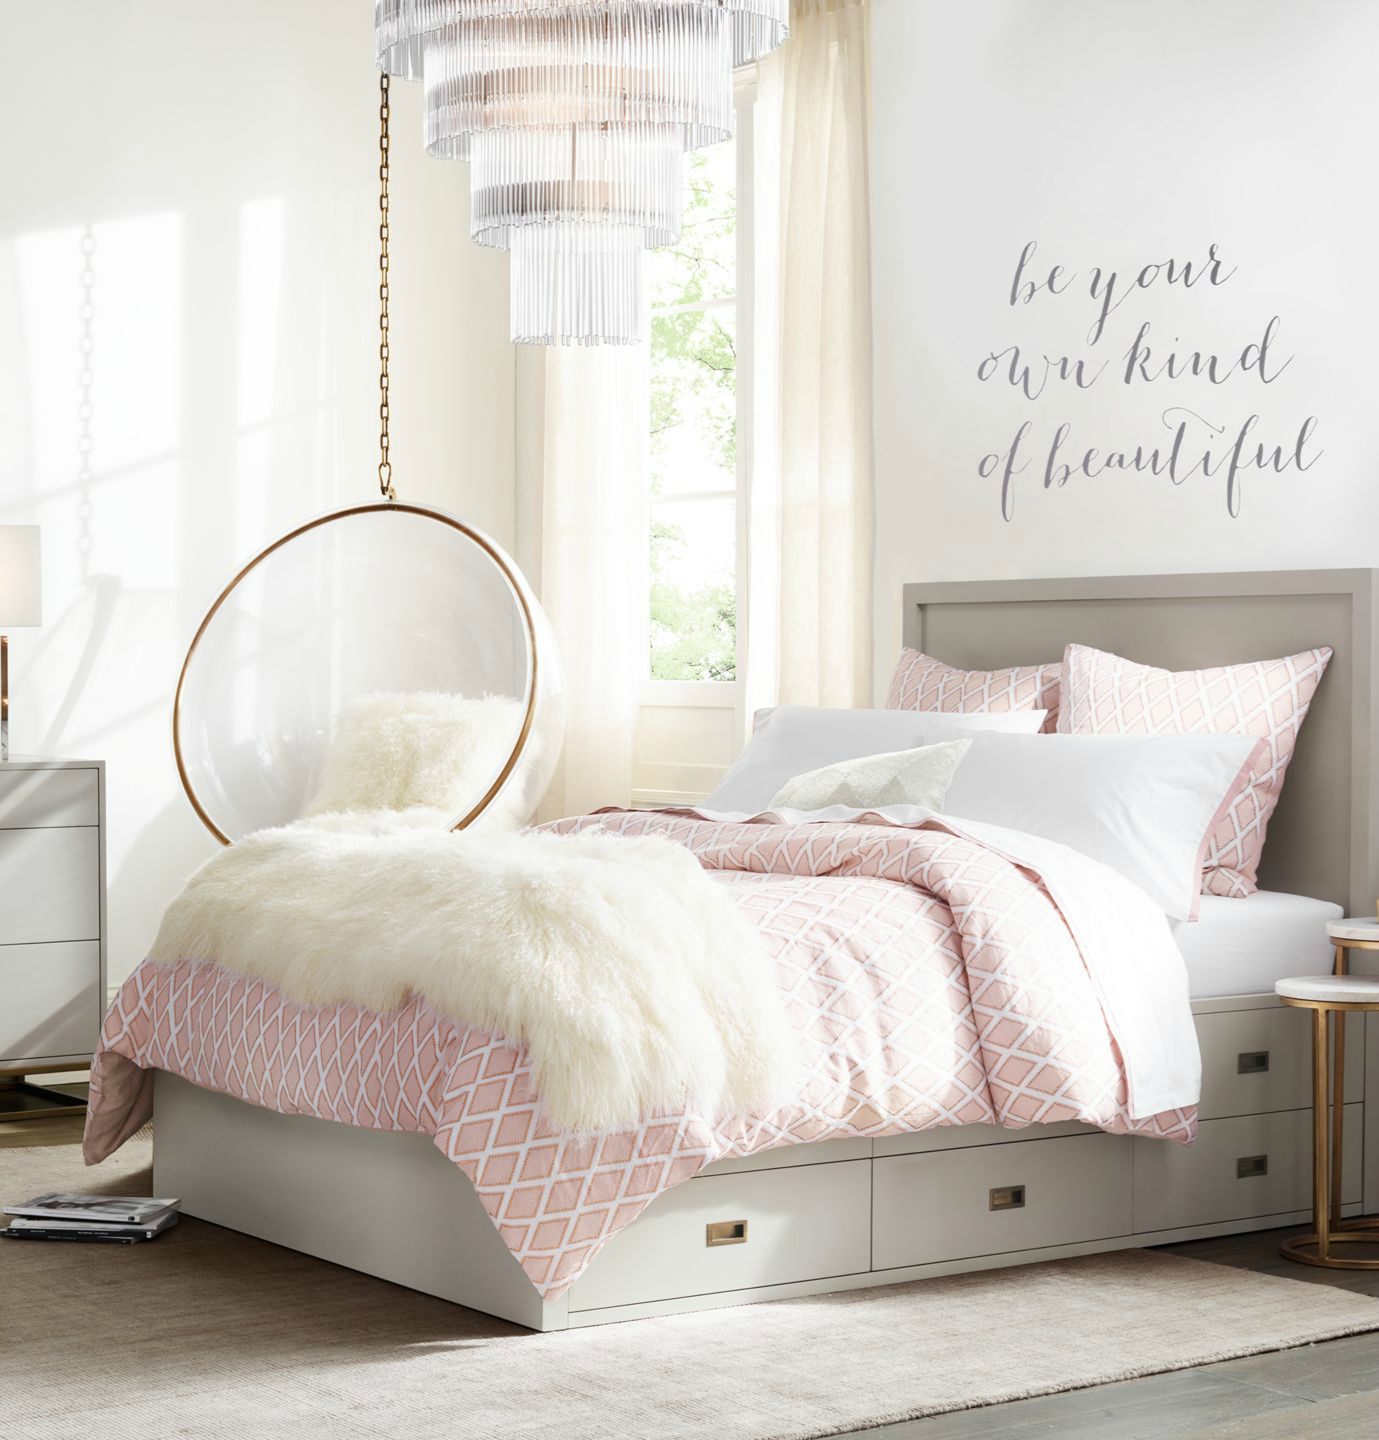 10 Creative Girls Bedroom Ideas Without Pink Girls Room Design